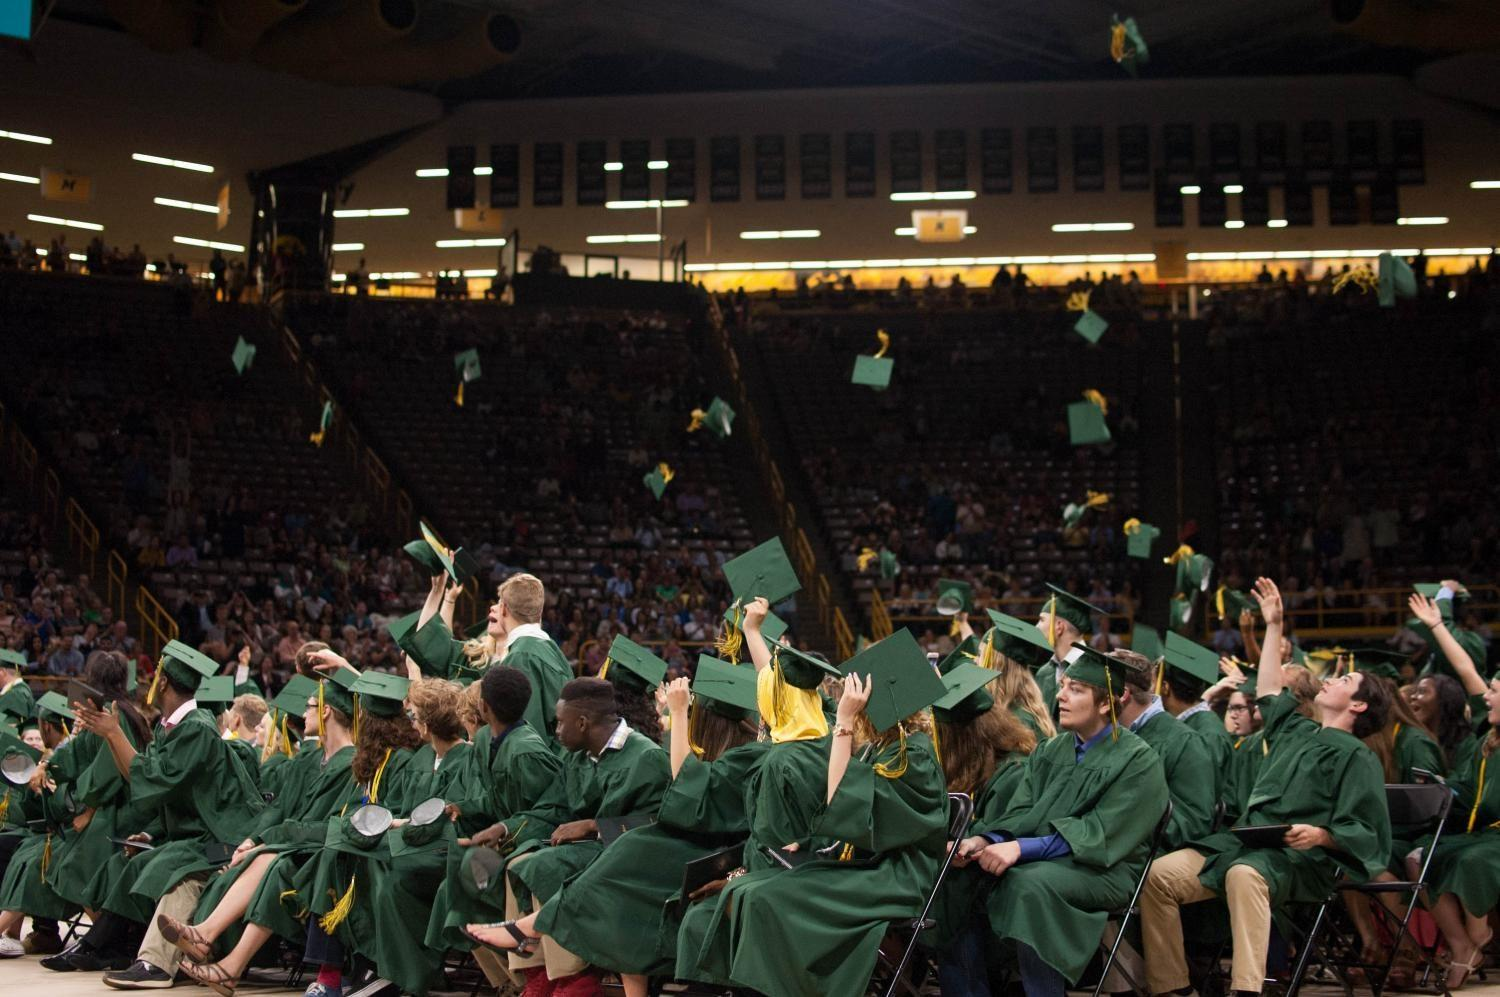 Finally graduates, students of the 2017 class of West High throw their caps into the air at Carver-Hawkeye Arena on May 27.